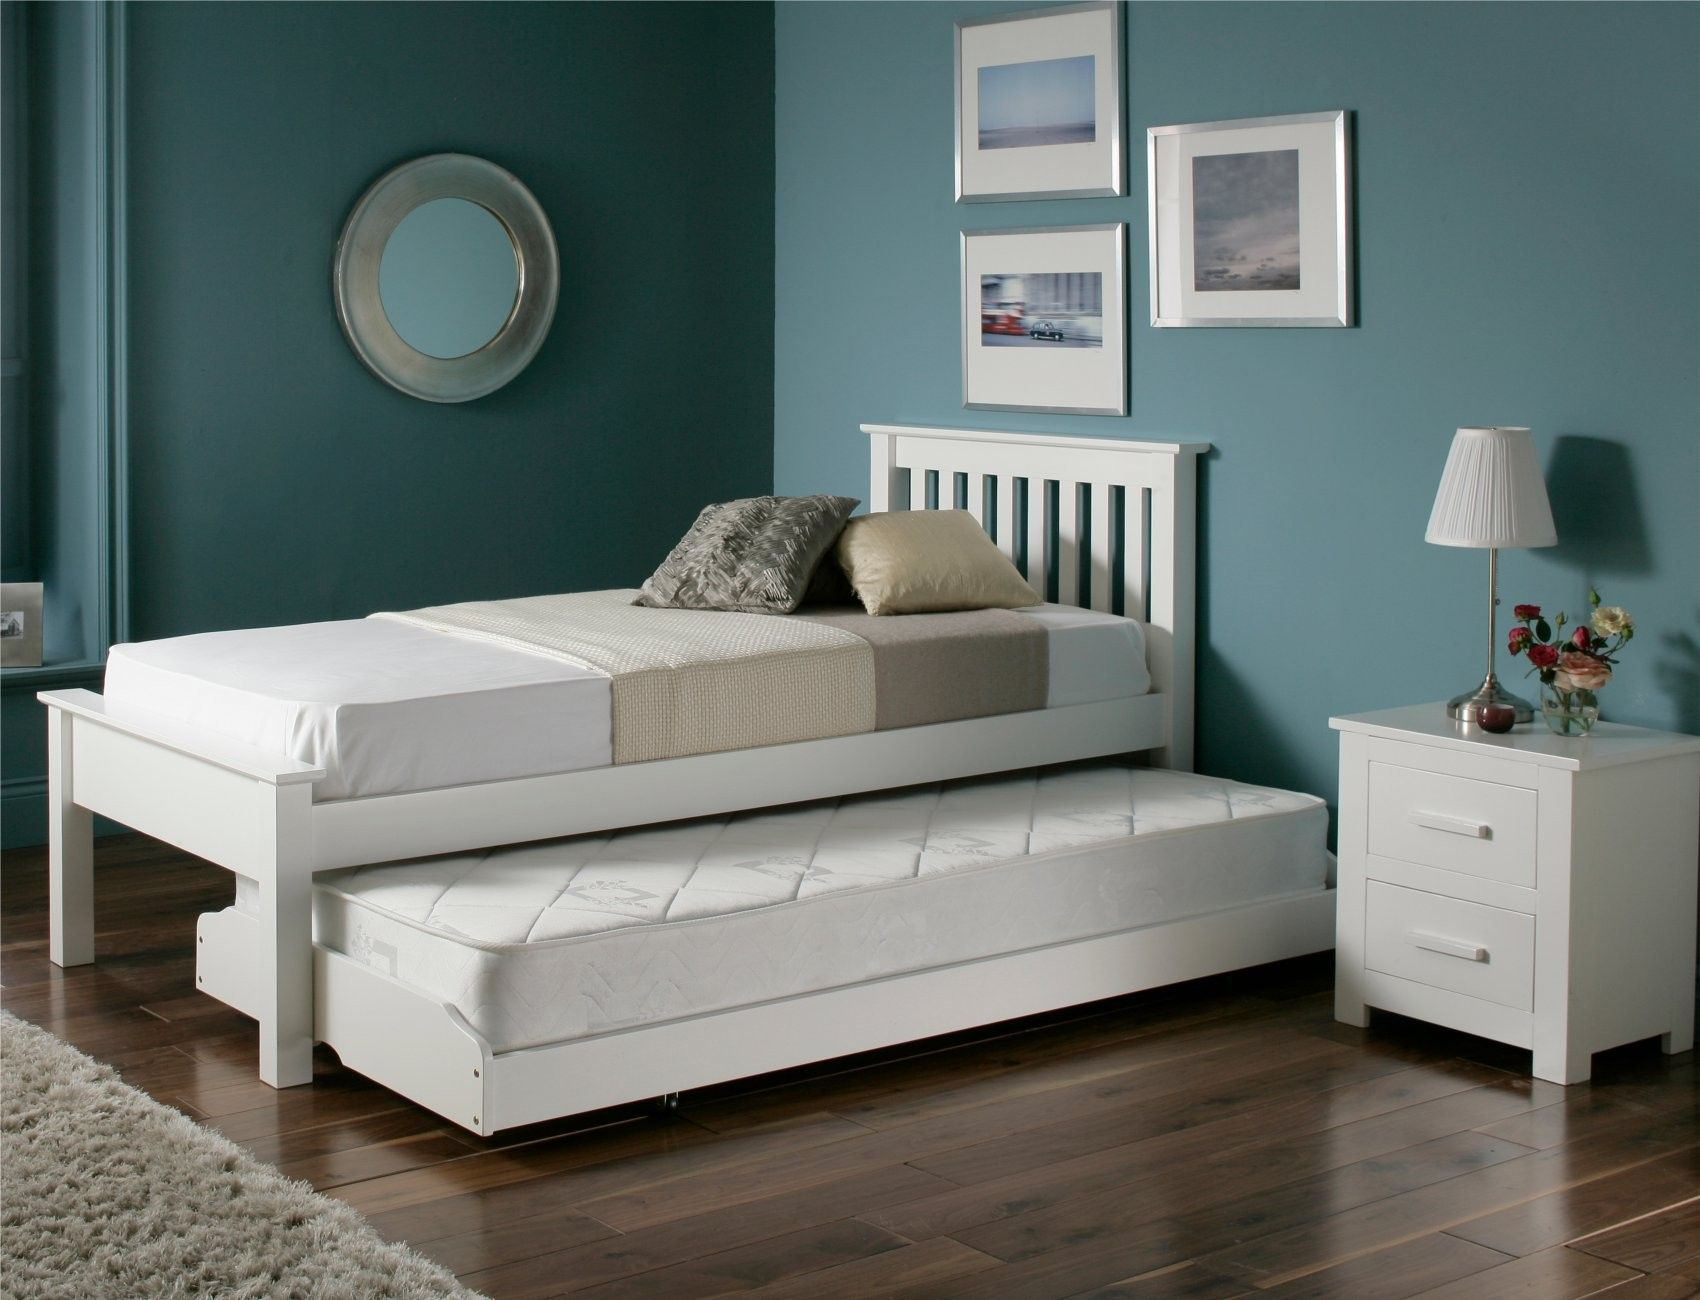 Best Portrait Of Guest Beds For Small Spaces Beds For Small 400 x 300